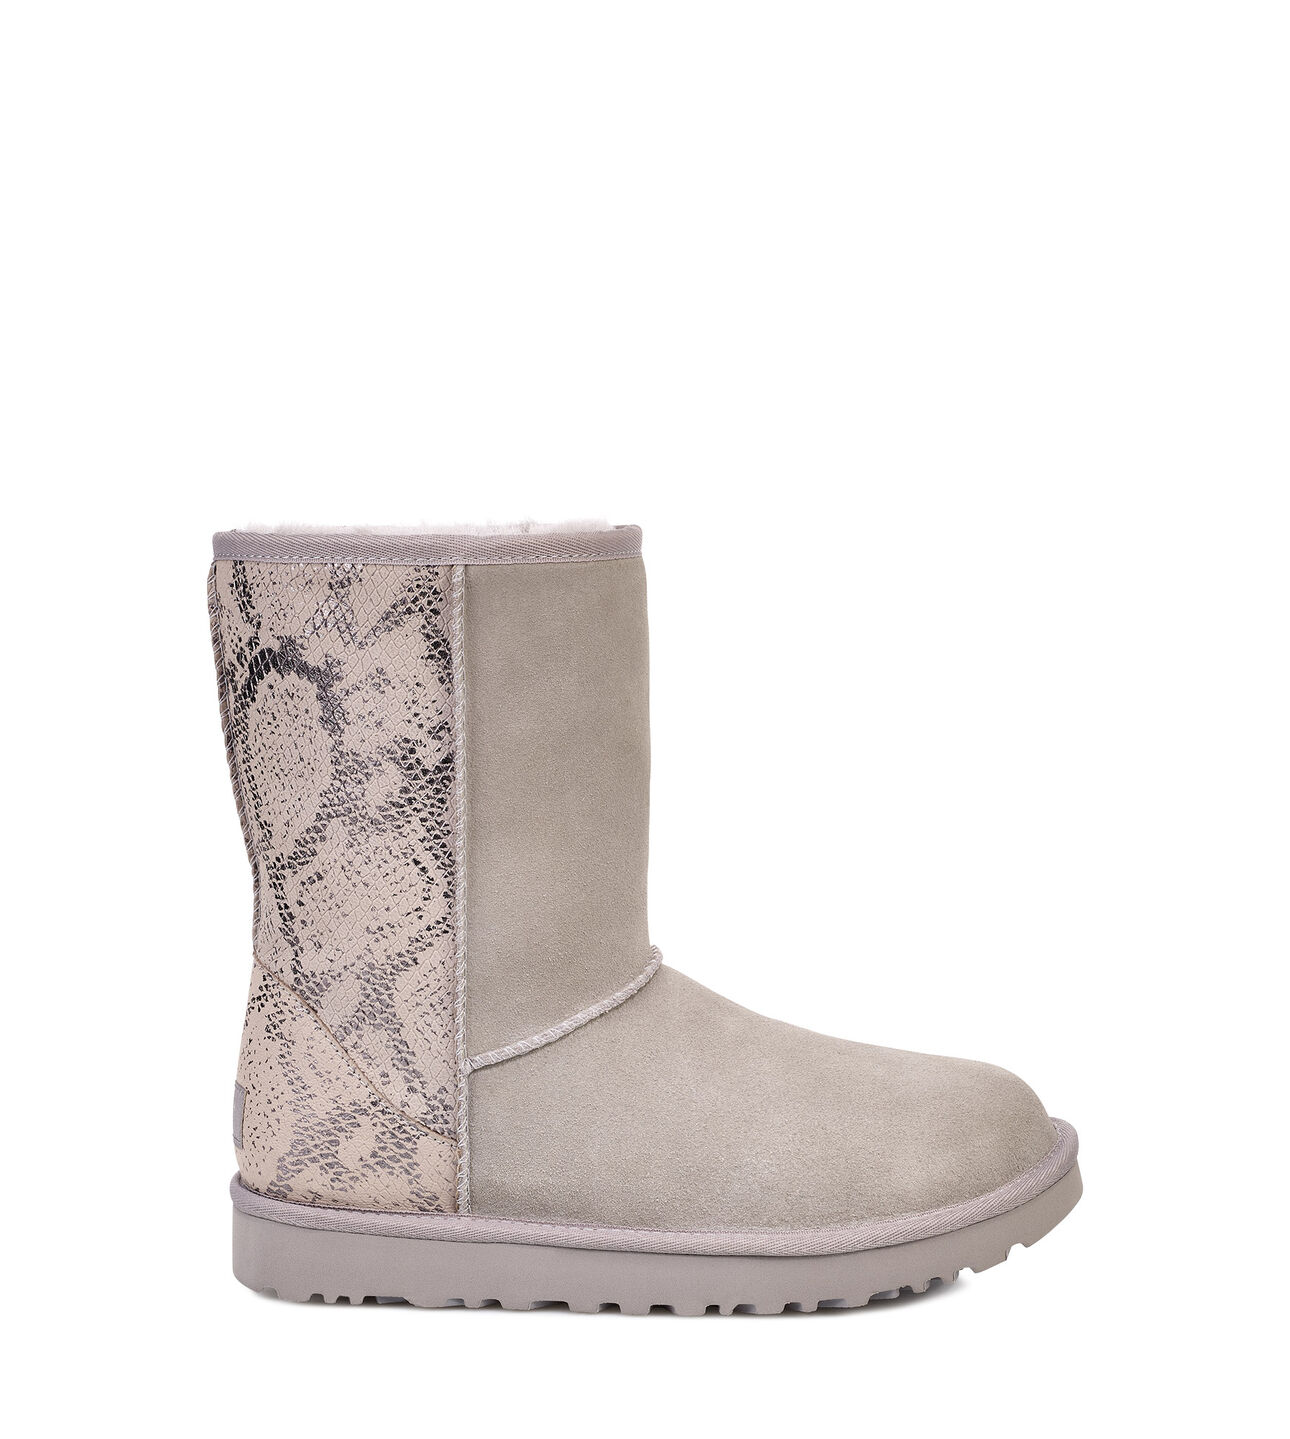 b66629e5a6f5 Women's. Share this product. Classic Short Metallic Snake Boot. UGG